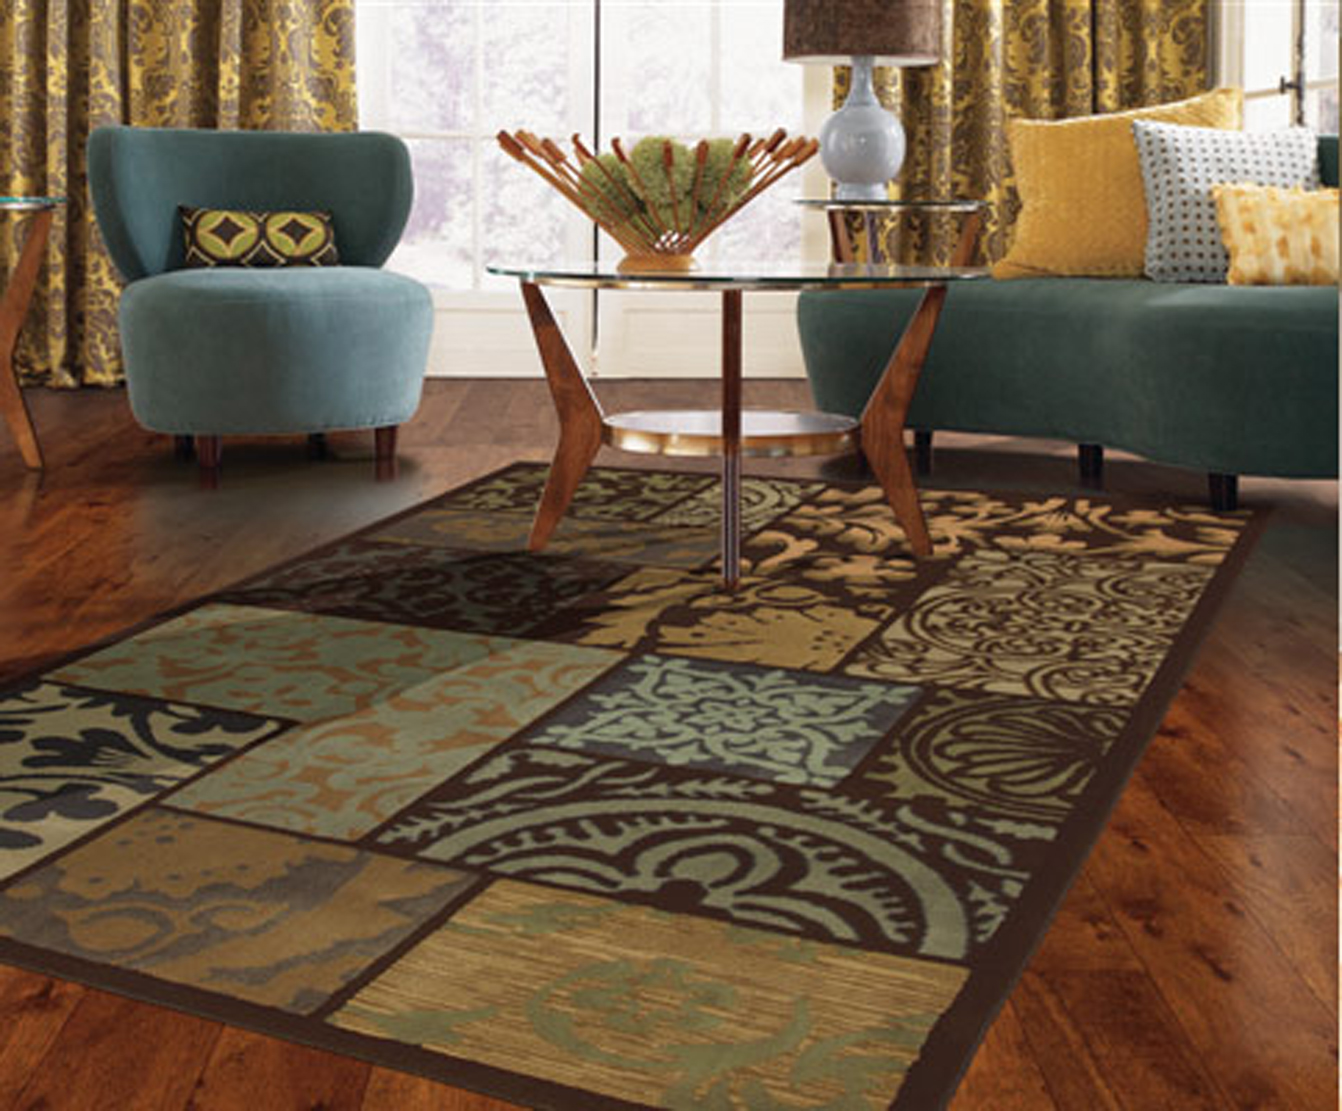 Colorful area rugs unique rugs for the living room - Living room area rugs contemporary ...